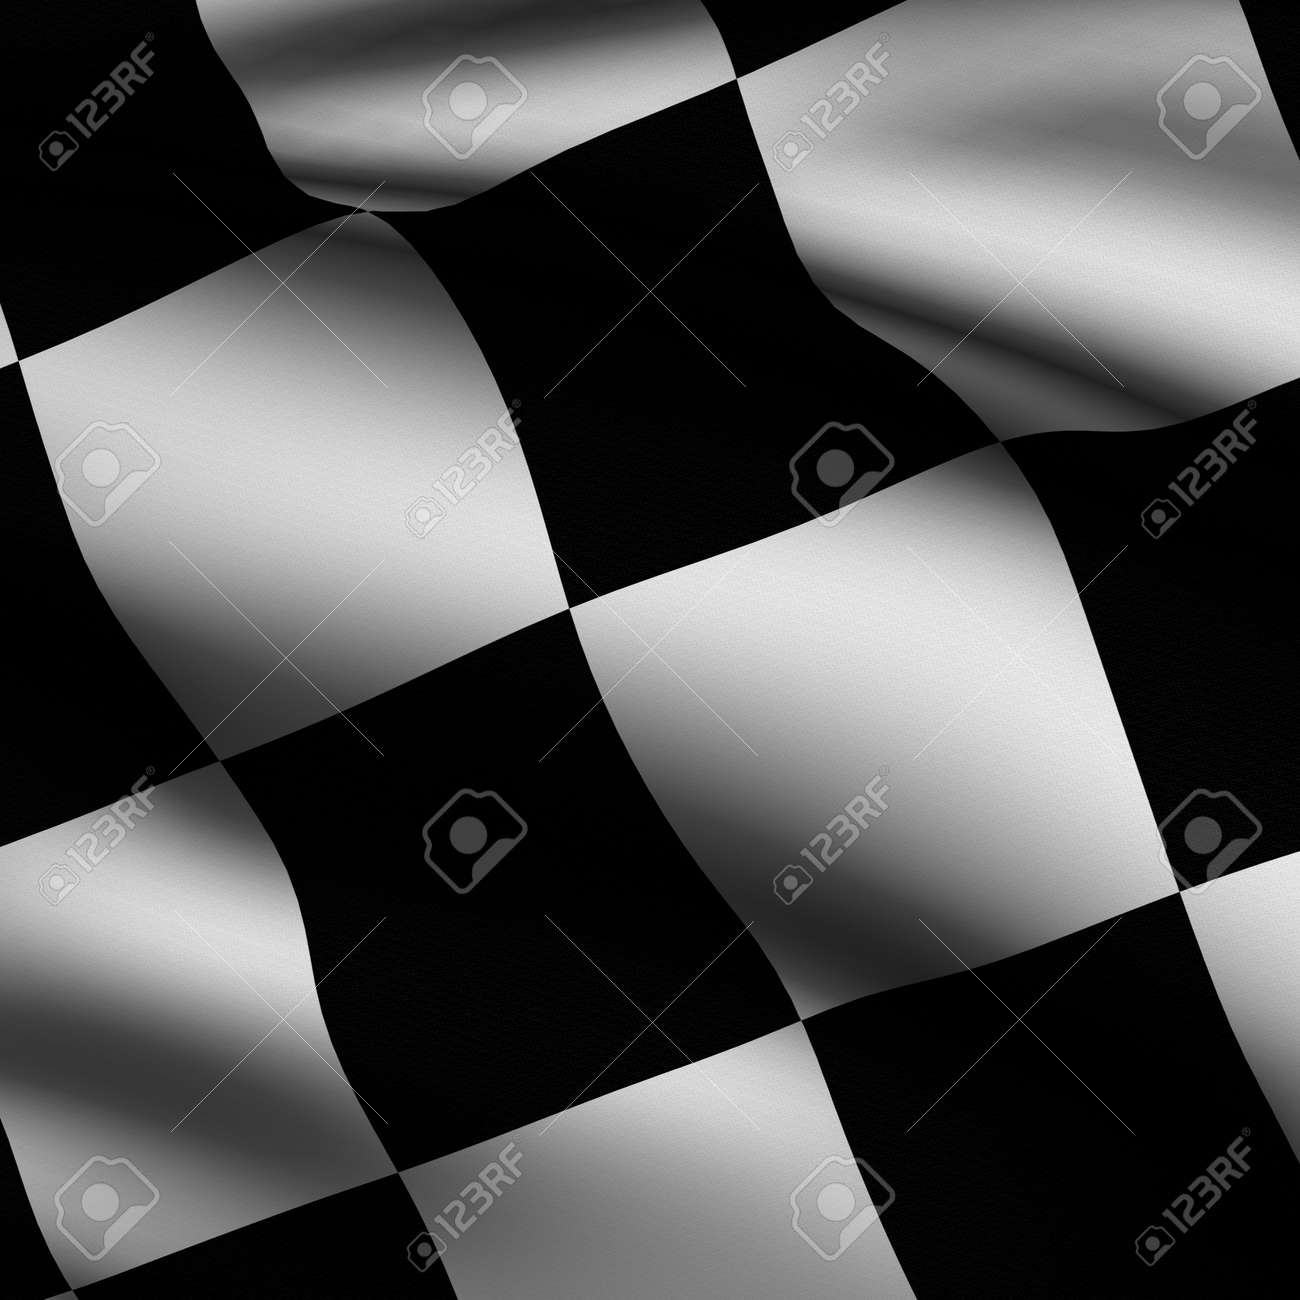 Rendering of a waving chequered flag with accurate colors and design and a fabric texture in a square format. Stock Photo - 3636503